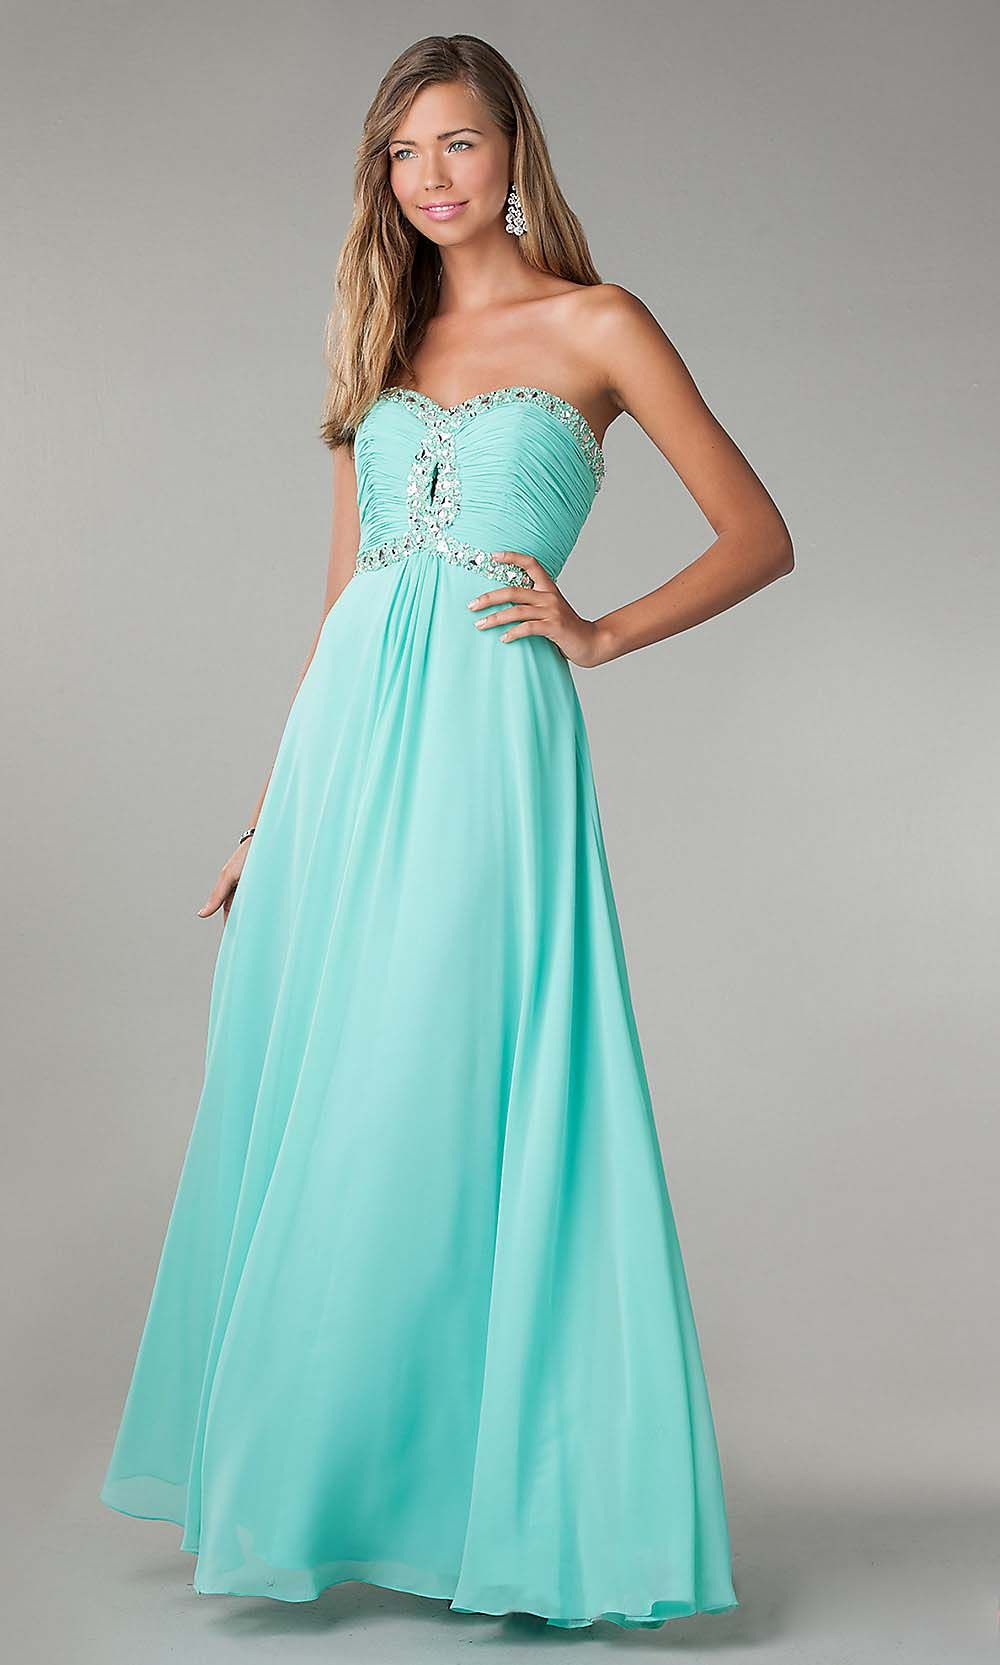 tiffany blue prom dress, long prom dress, chiffon prom dress, purple ...